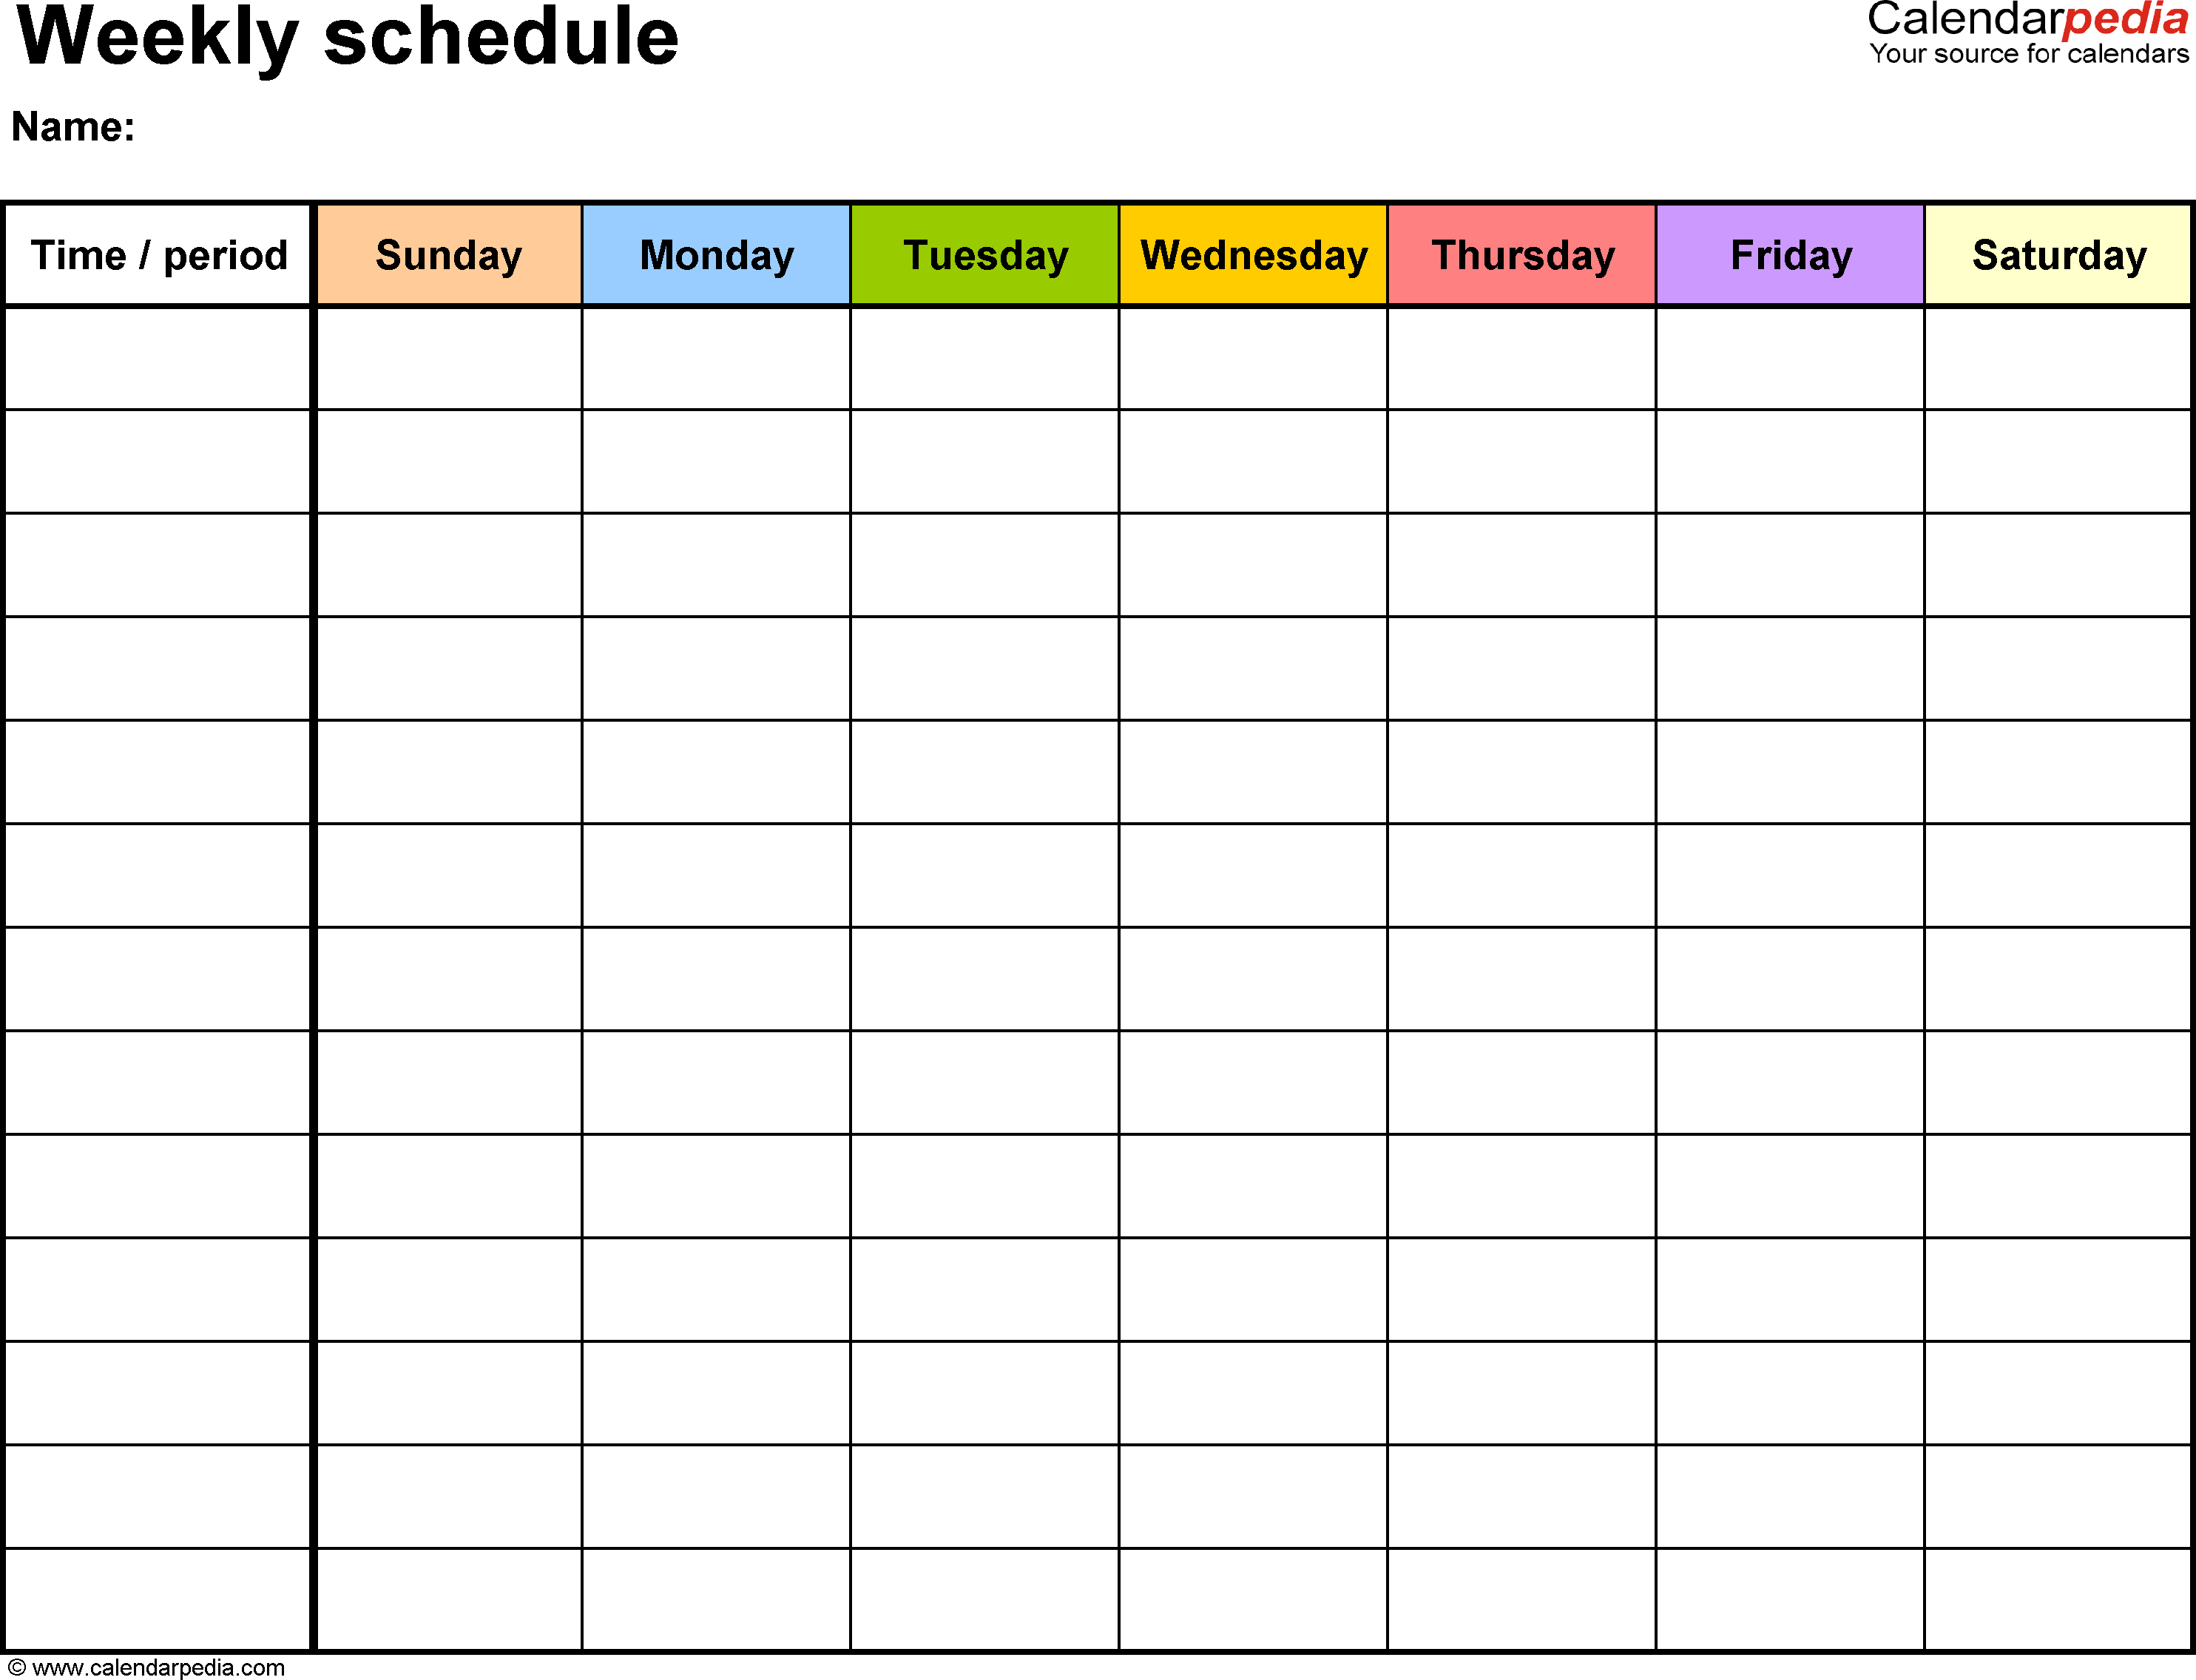 Free Weekly Schedule Templates For Word - 18 Templates To Employee Weekly Schedule Template Free